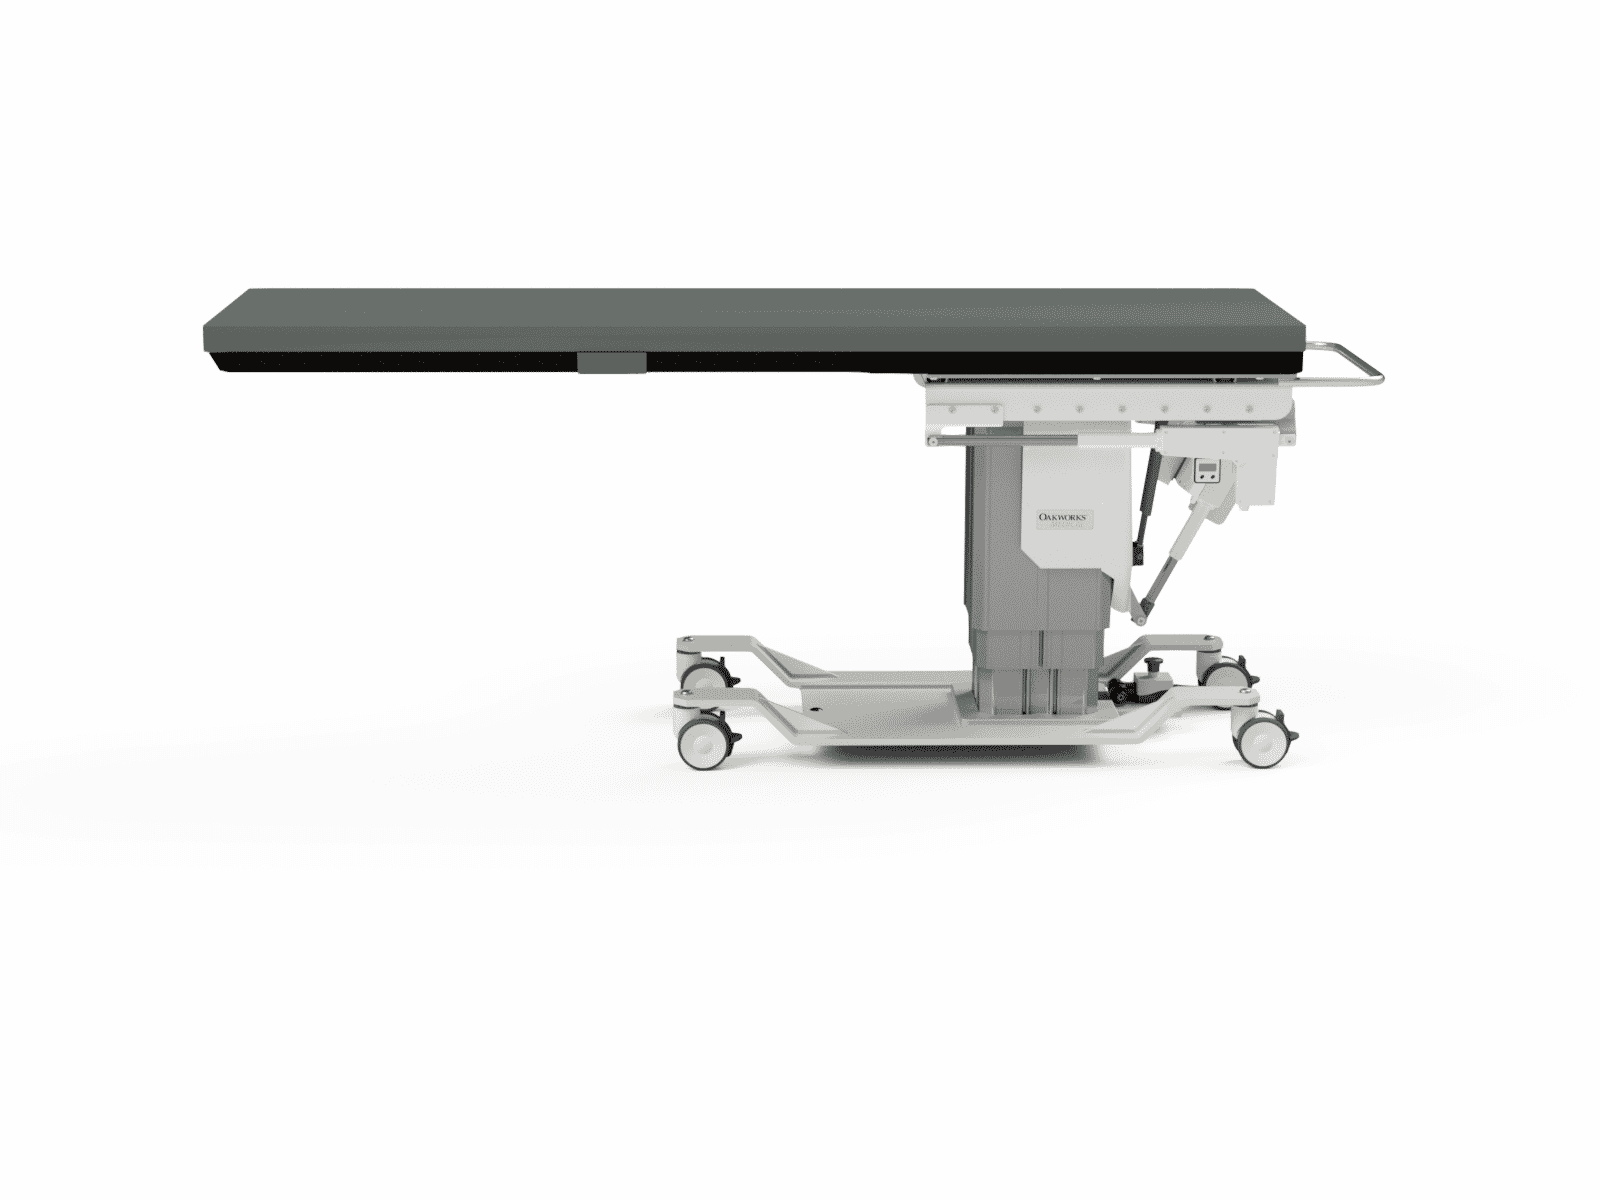 CFPM401-Rectangular-Top Imaging-Pain Management Table